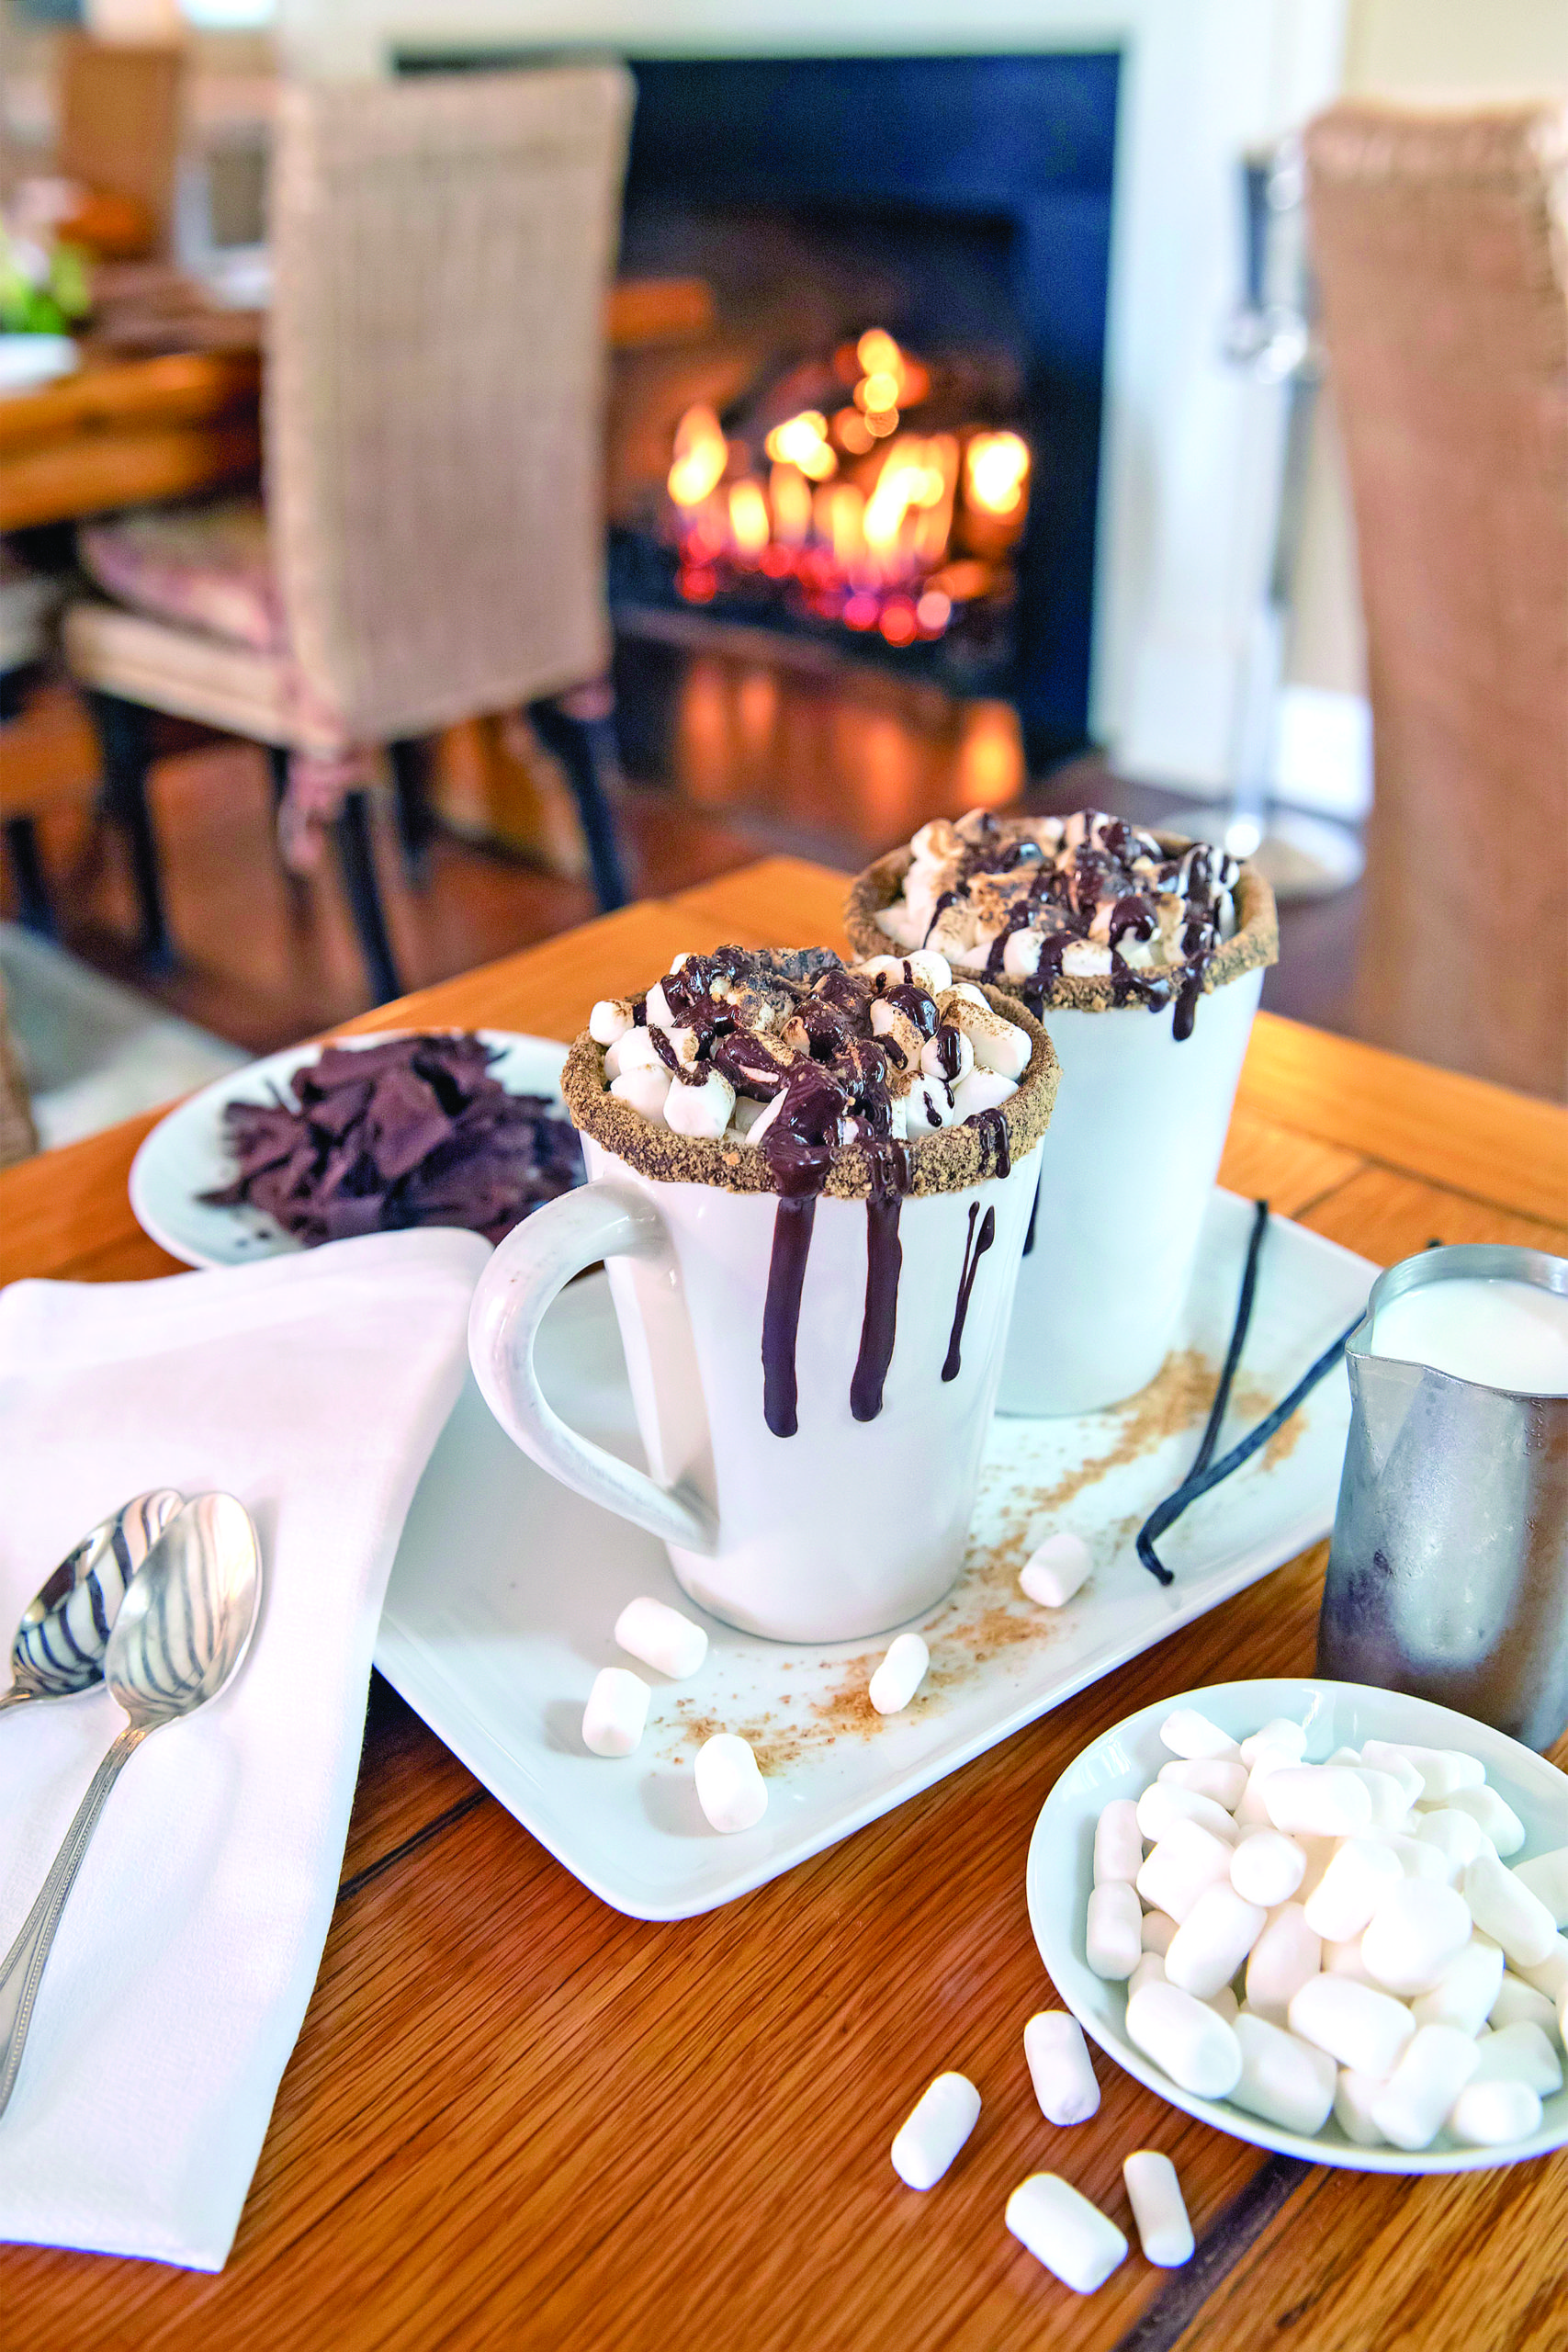 Hot Chocolate, as prepared by Chef Michael Rozzi at the 1770 House in East Hampton, New York, photographed on October 29, 2019